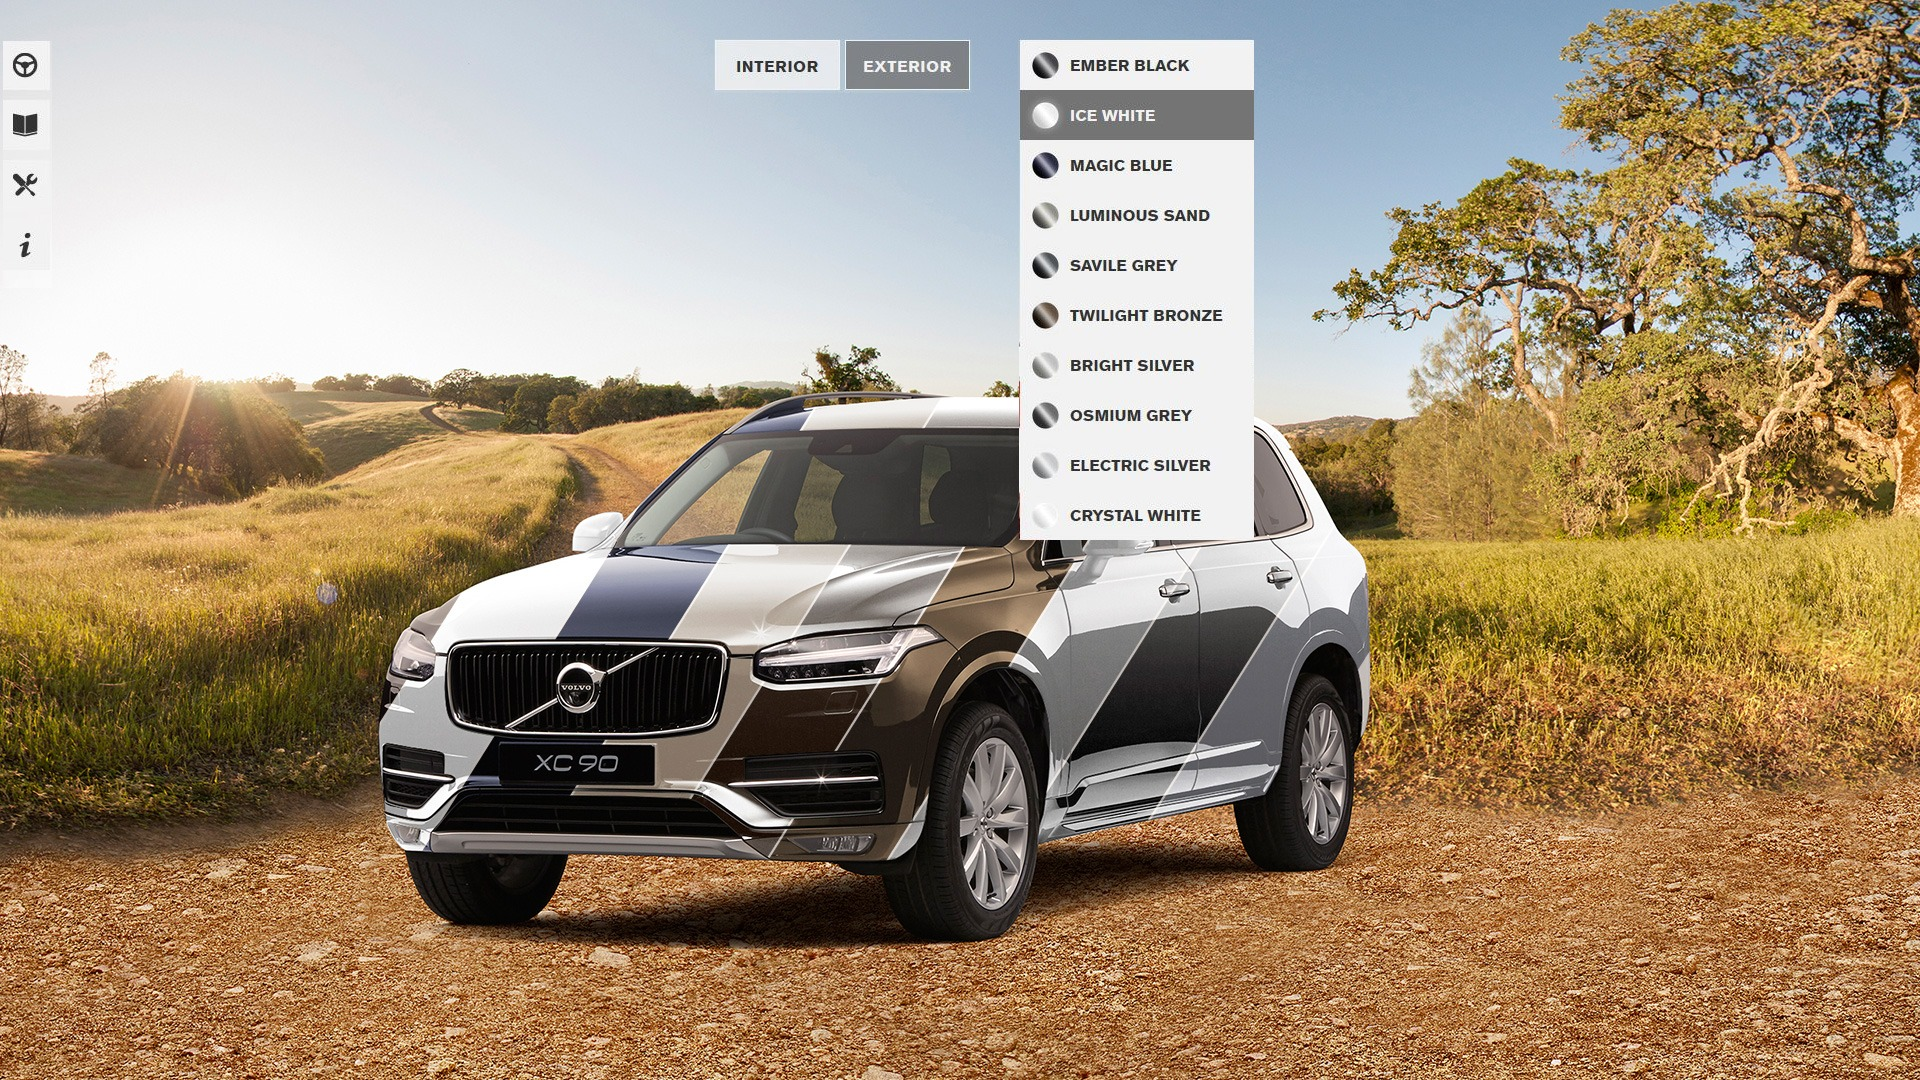 stas3dart-volvo-visualise-xc90-promotional-website-photo-grading